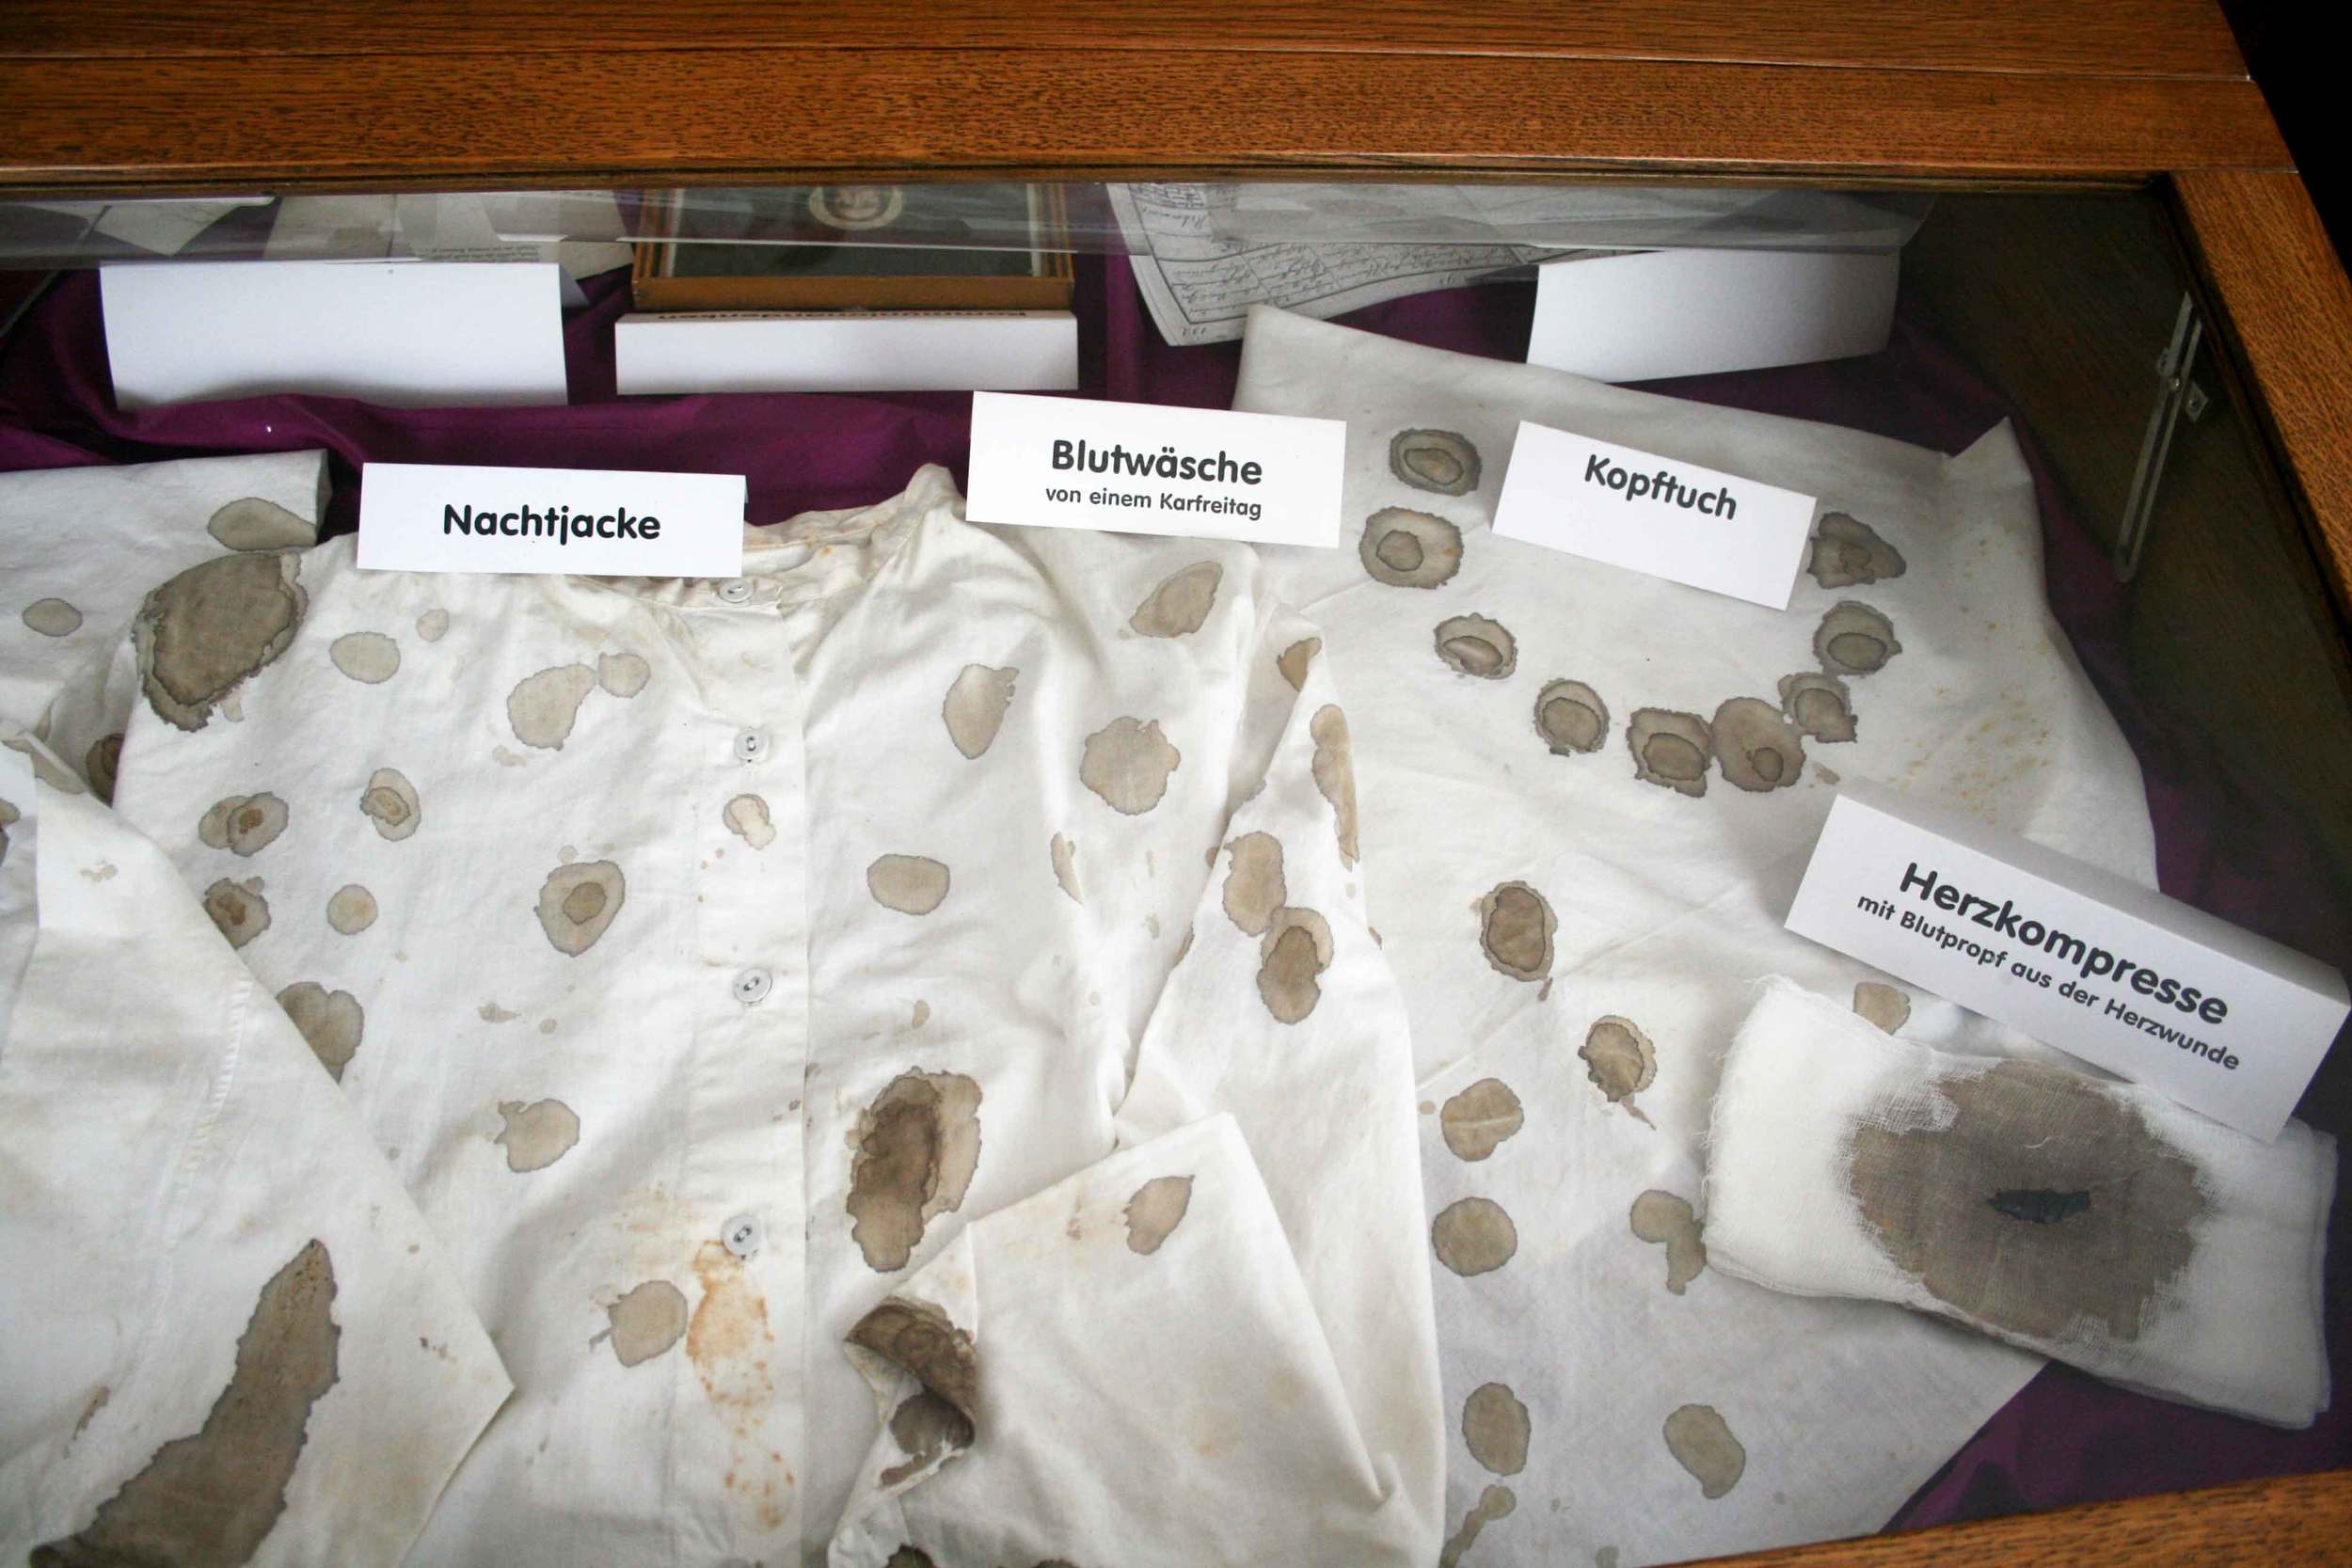 The clothes of Saint Therese Neumann in which she experienced her suffering, Konnersreuth, Bavaria, Germany.